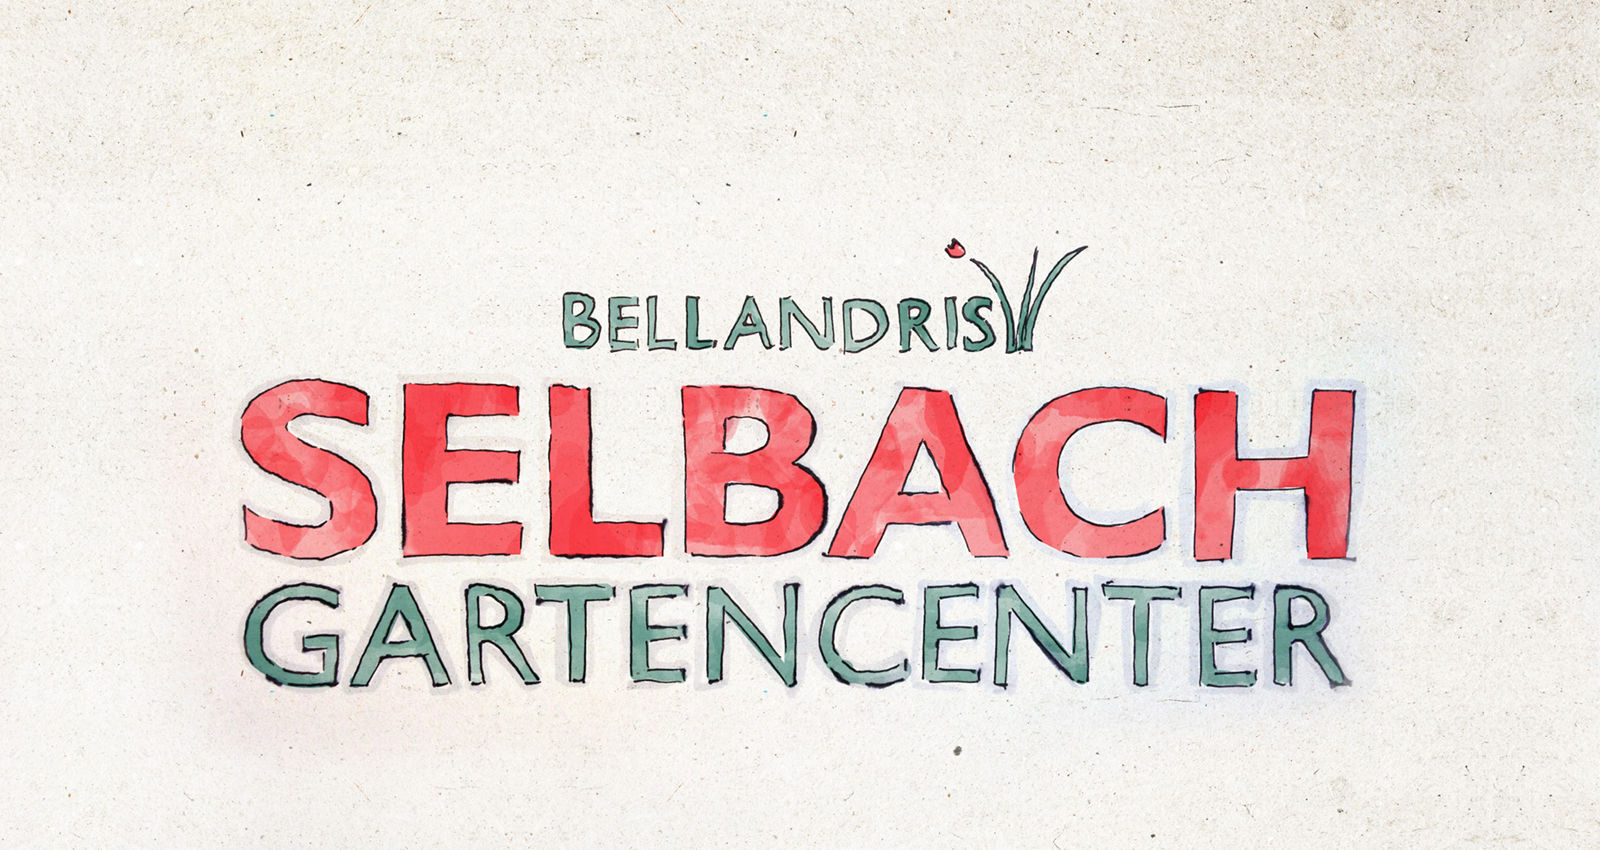 Gartencenter Selbach Header Logo